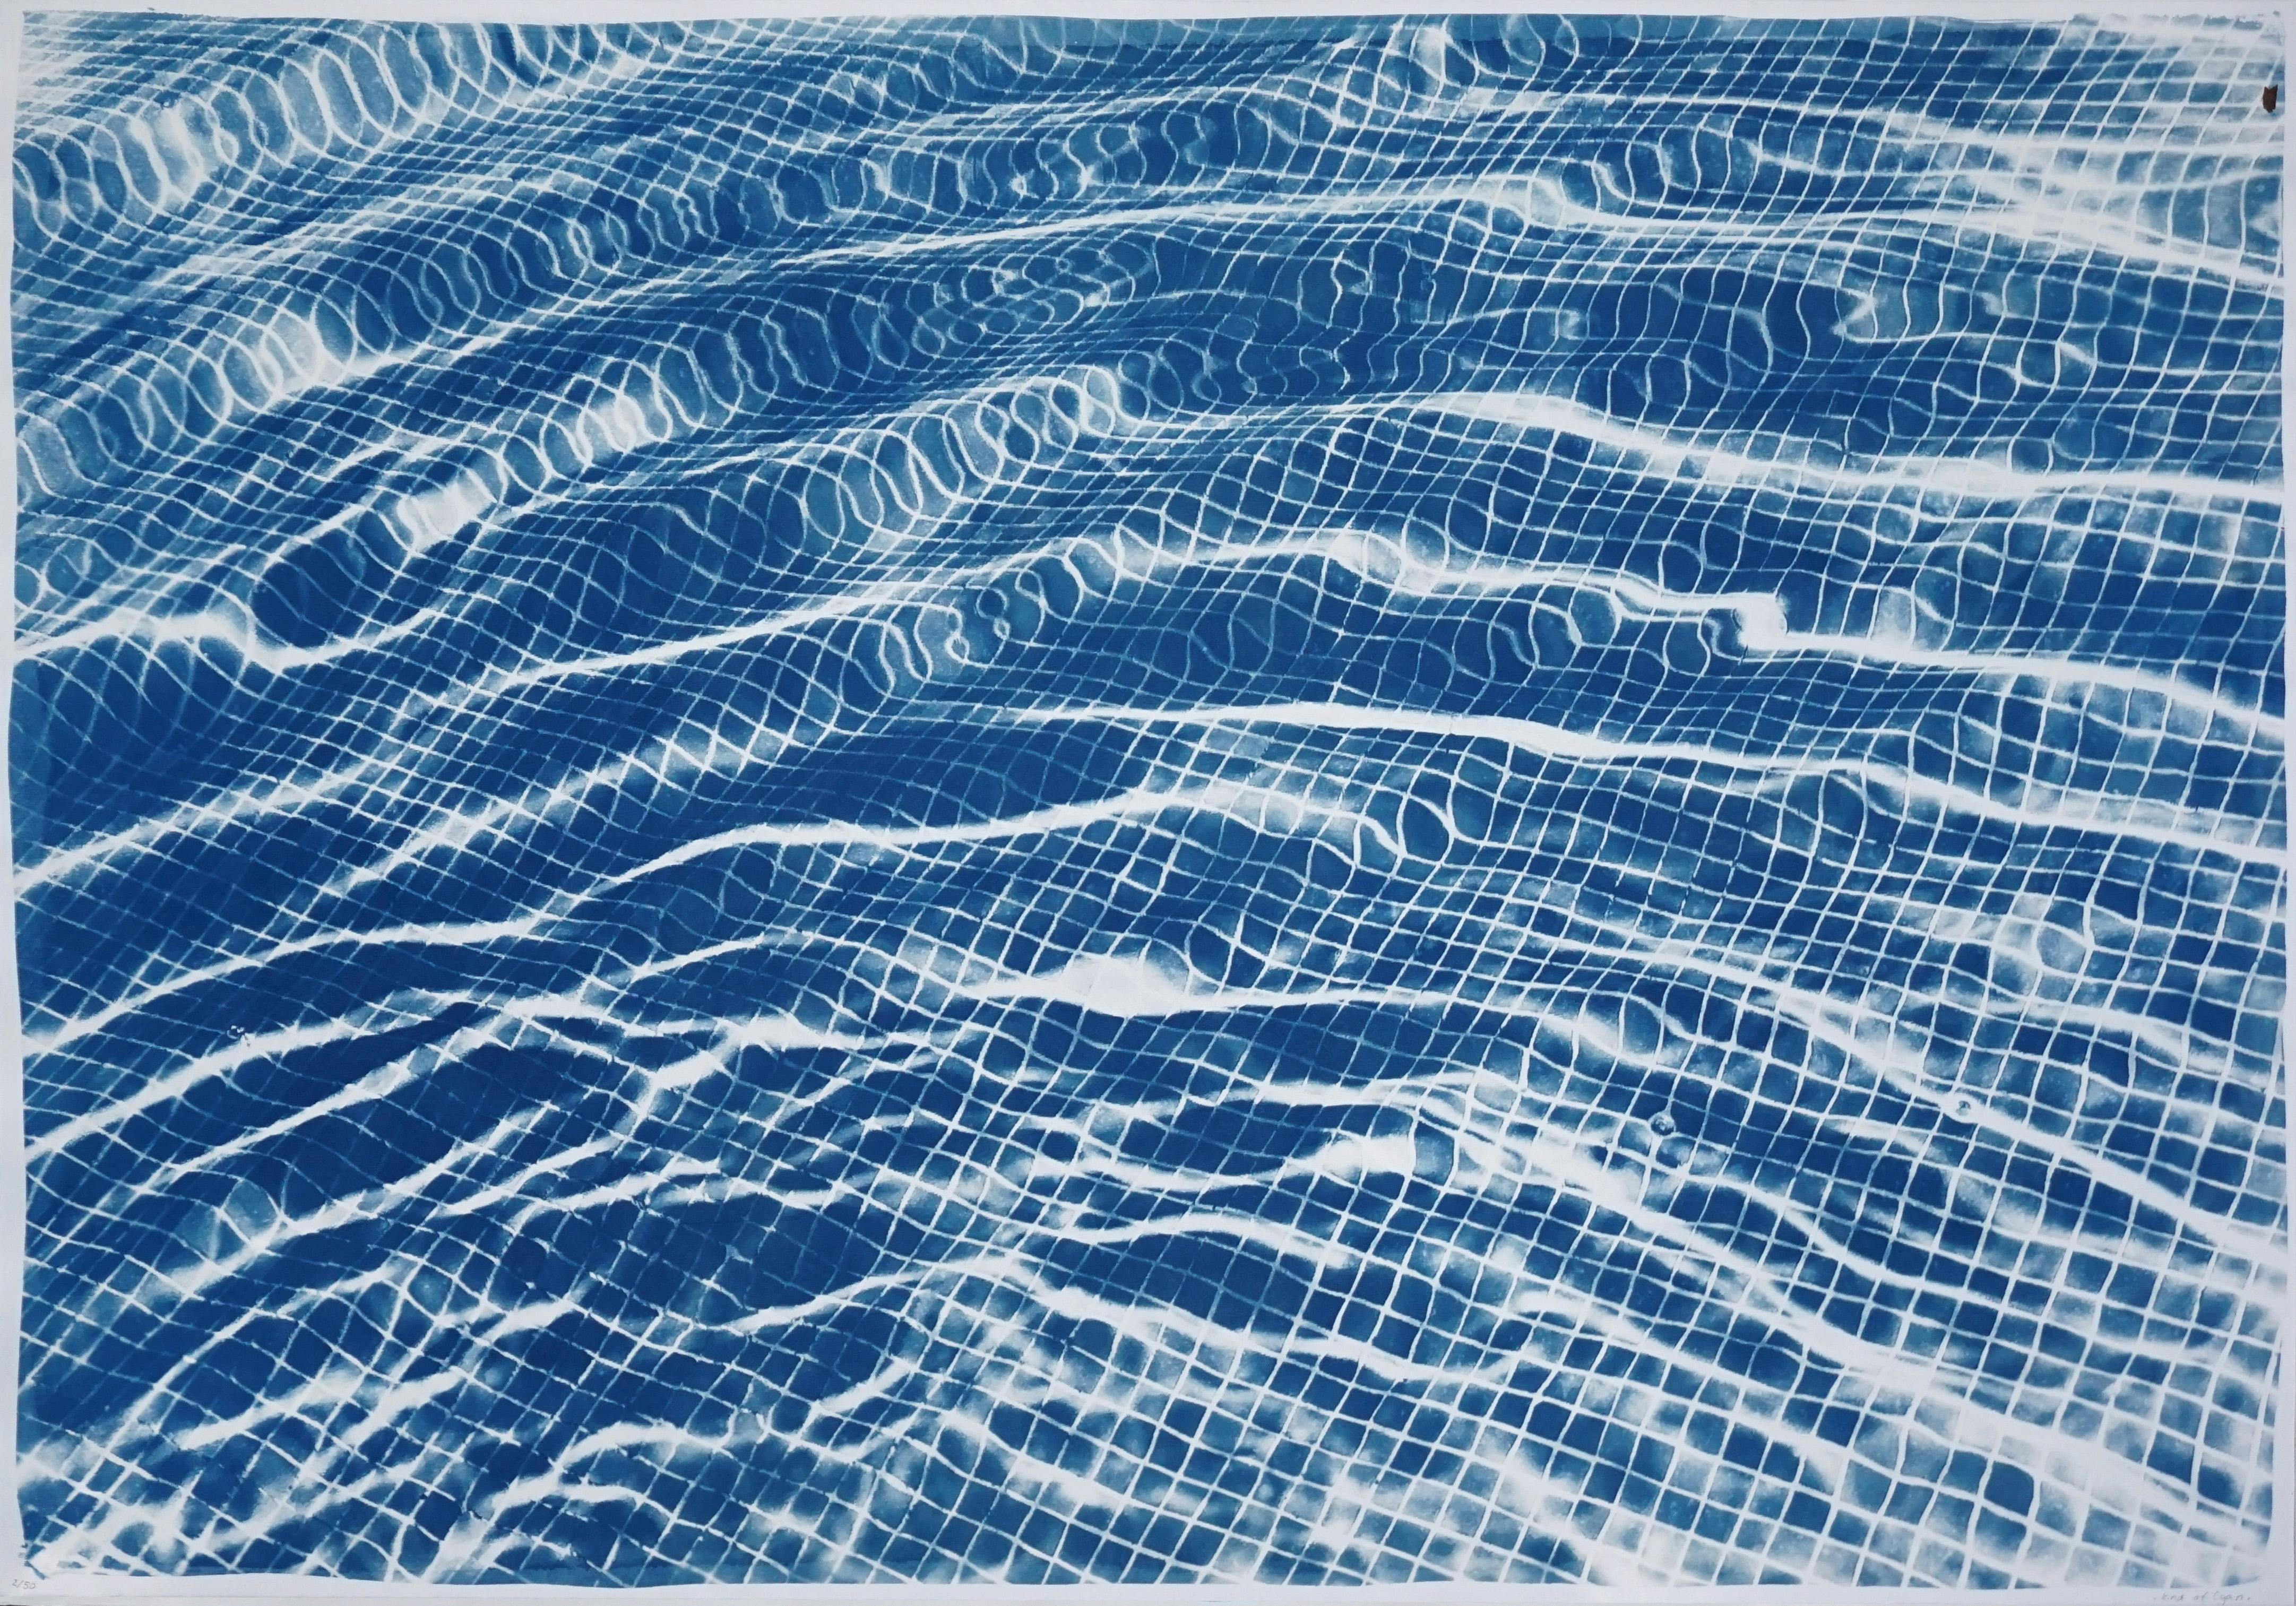 Miami Art Deco Pool Cyanotype on Watercolor Paper, 100x70cm, Limited Edition